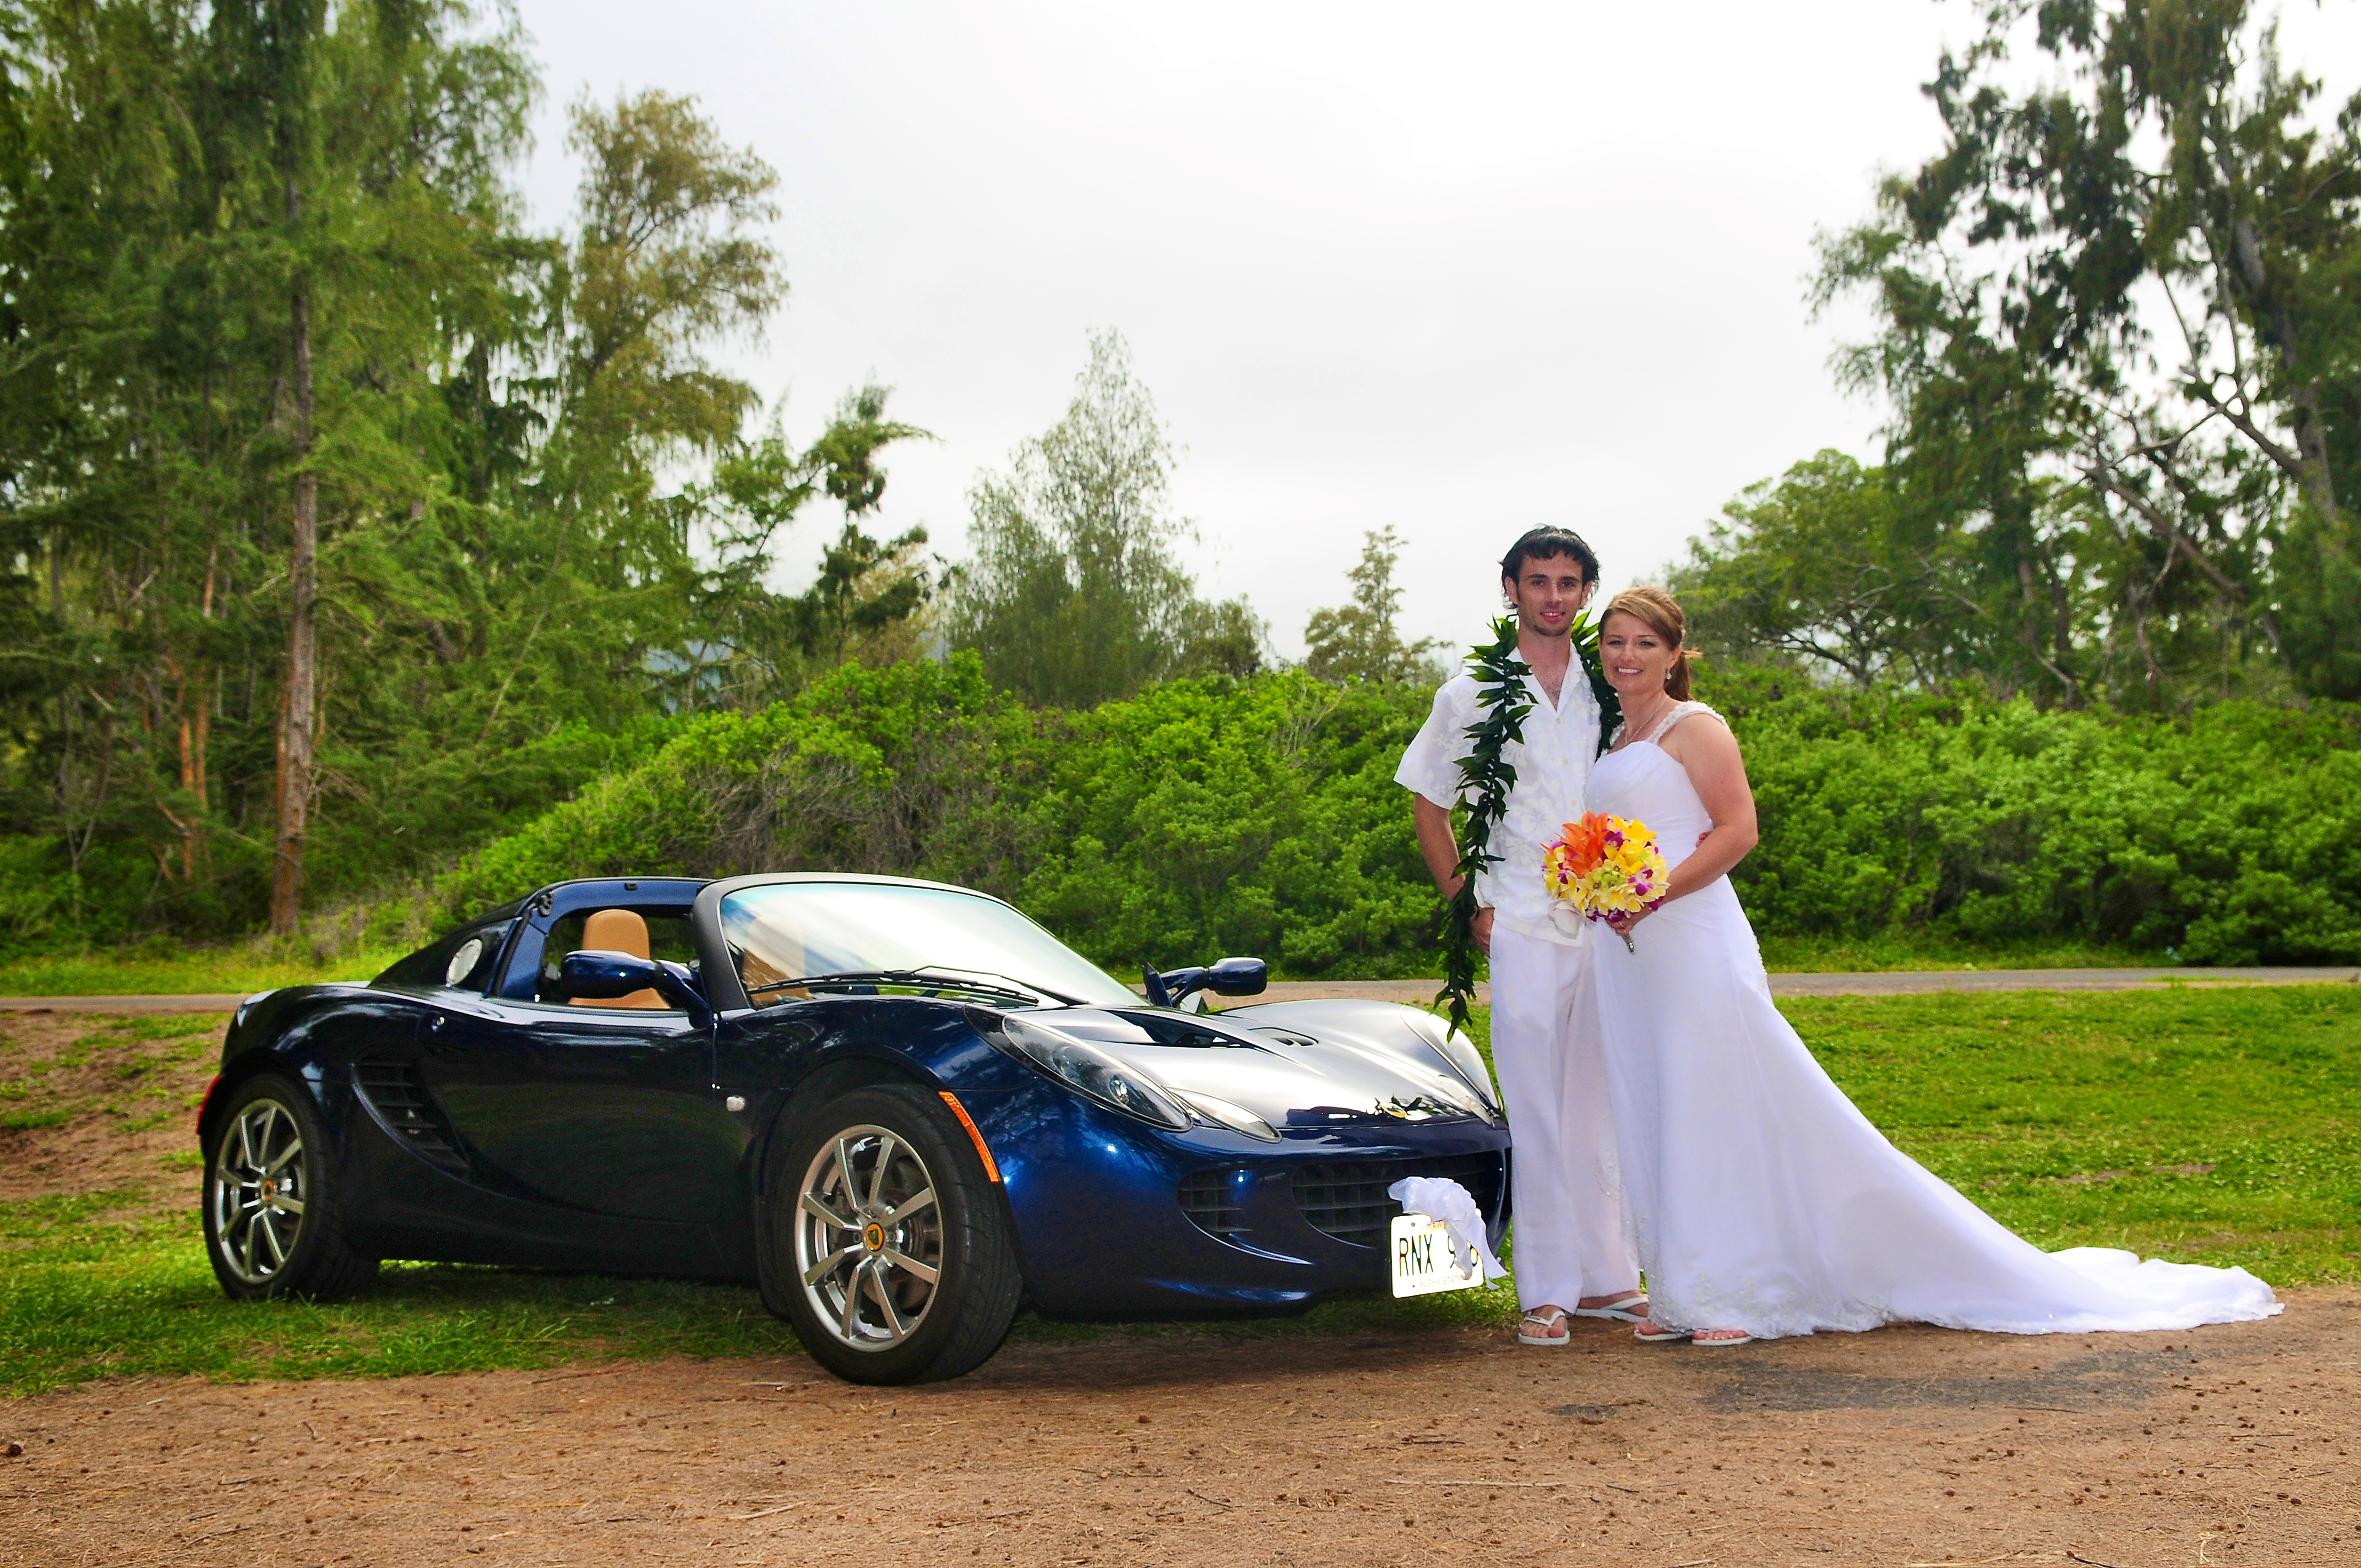 alohaislandweddings- Lotus car -23